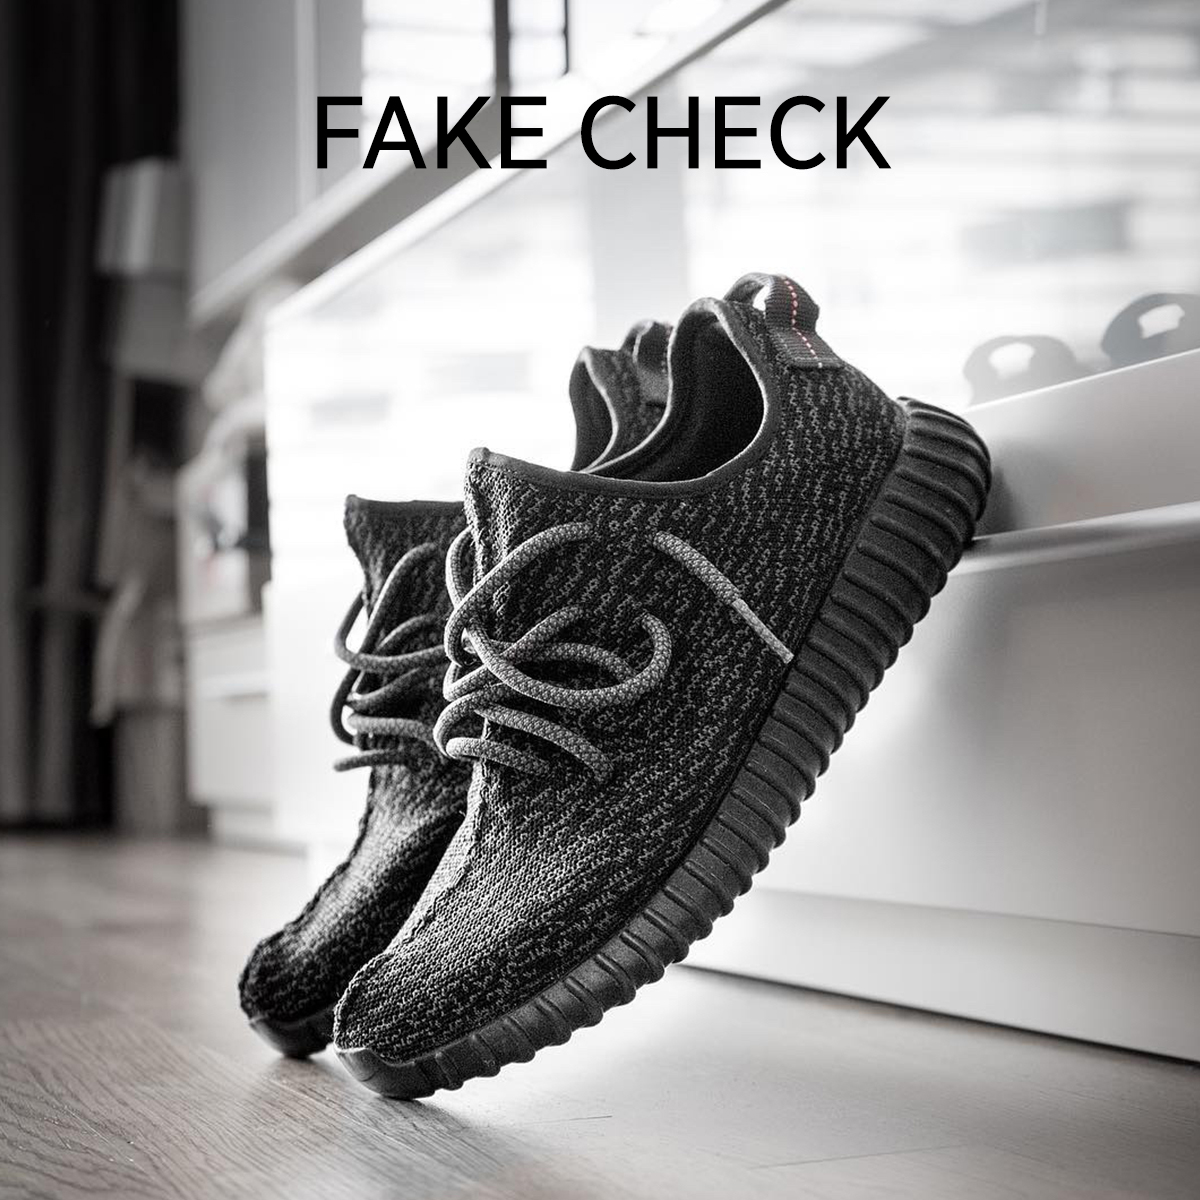 Adidas Originals Yeezy Boost 350 Pirate Black Fake Check Klekt